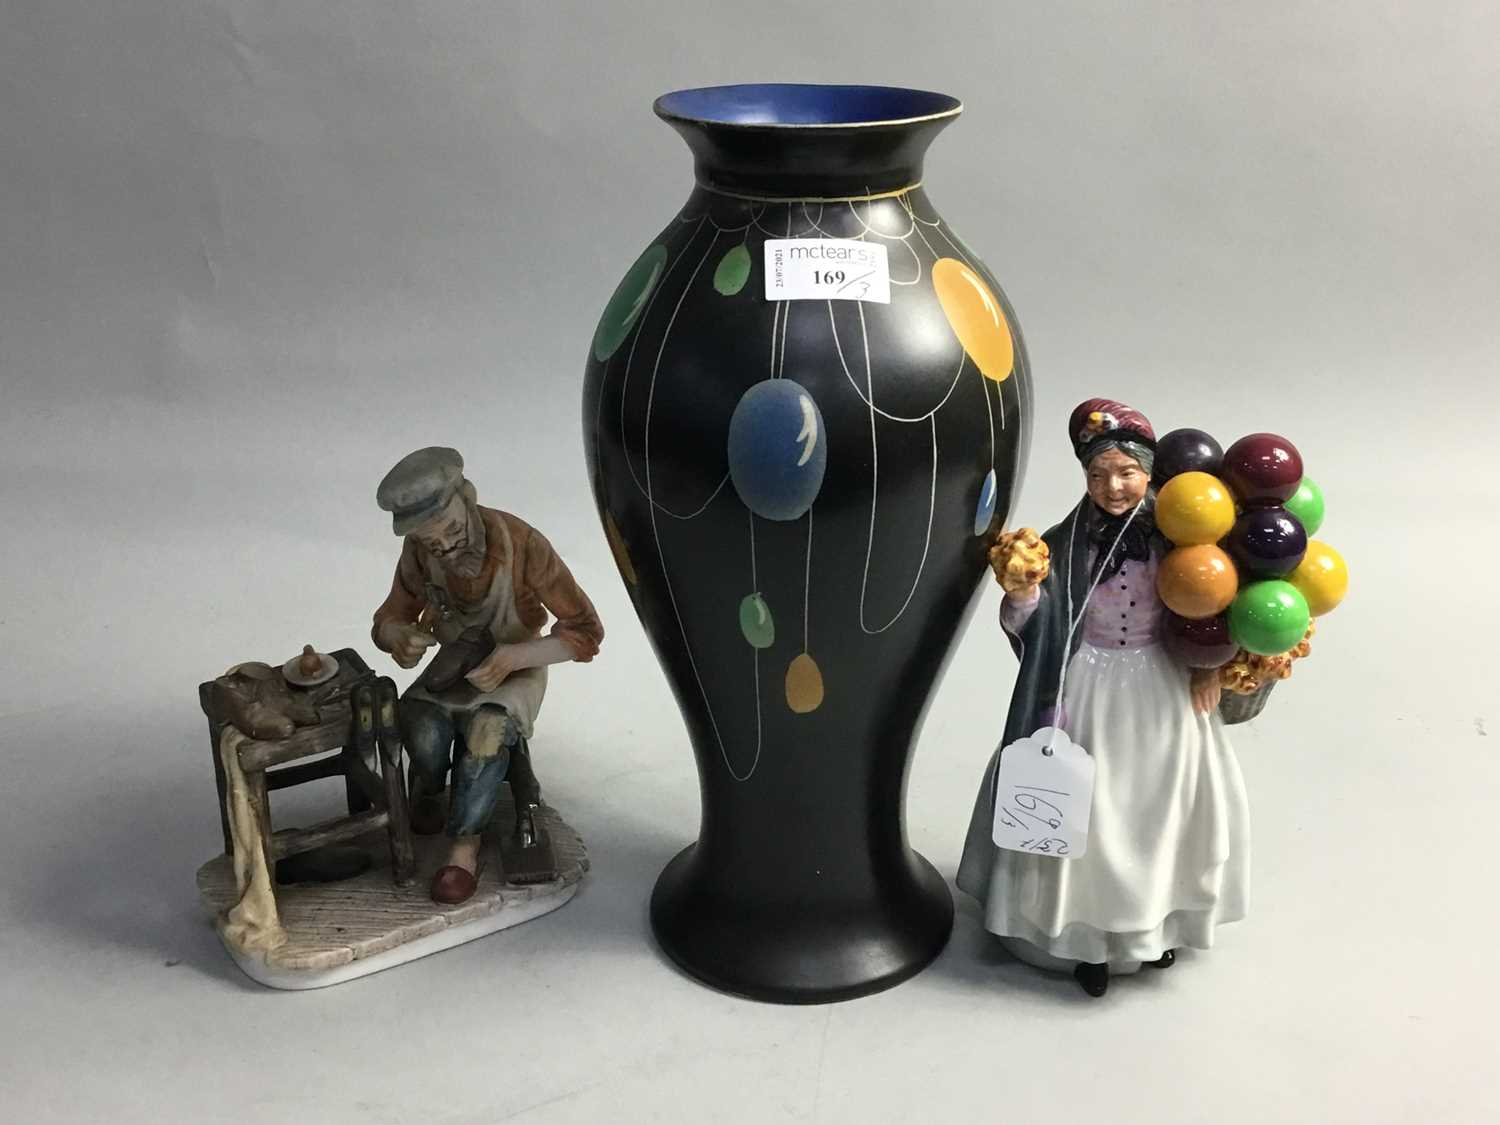 A ROYAL DOULTON FIGURE ANOTHER FIGURE AND A VASE